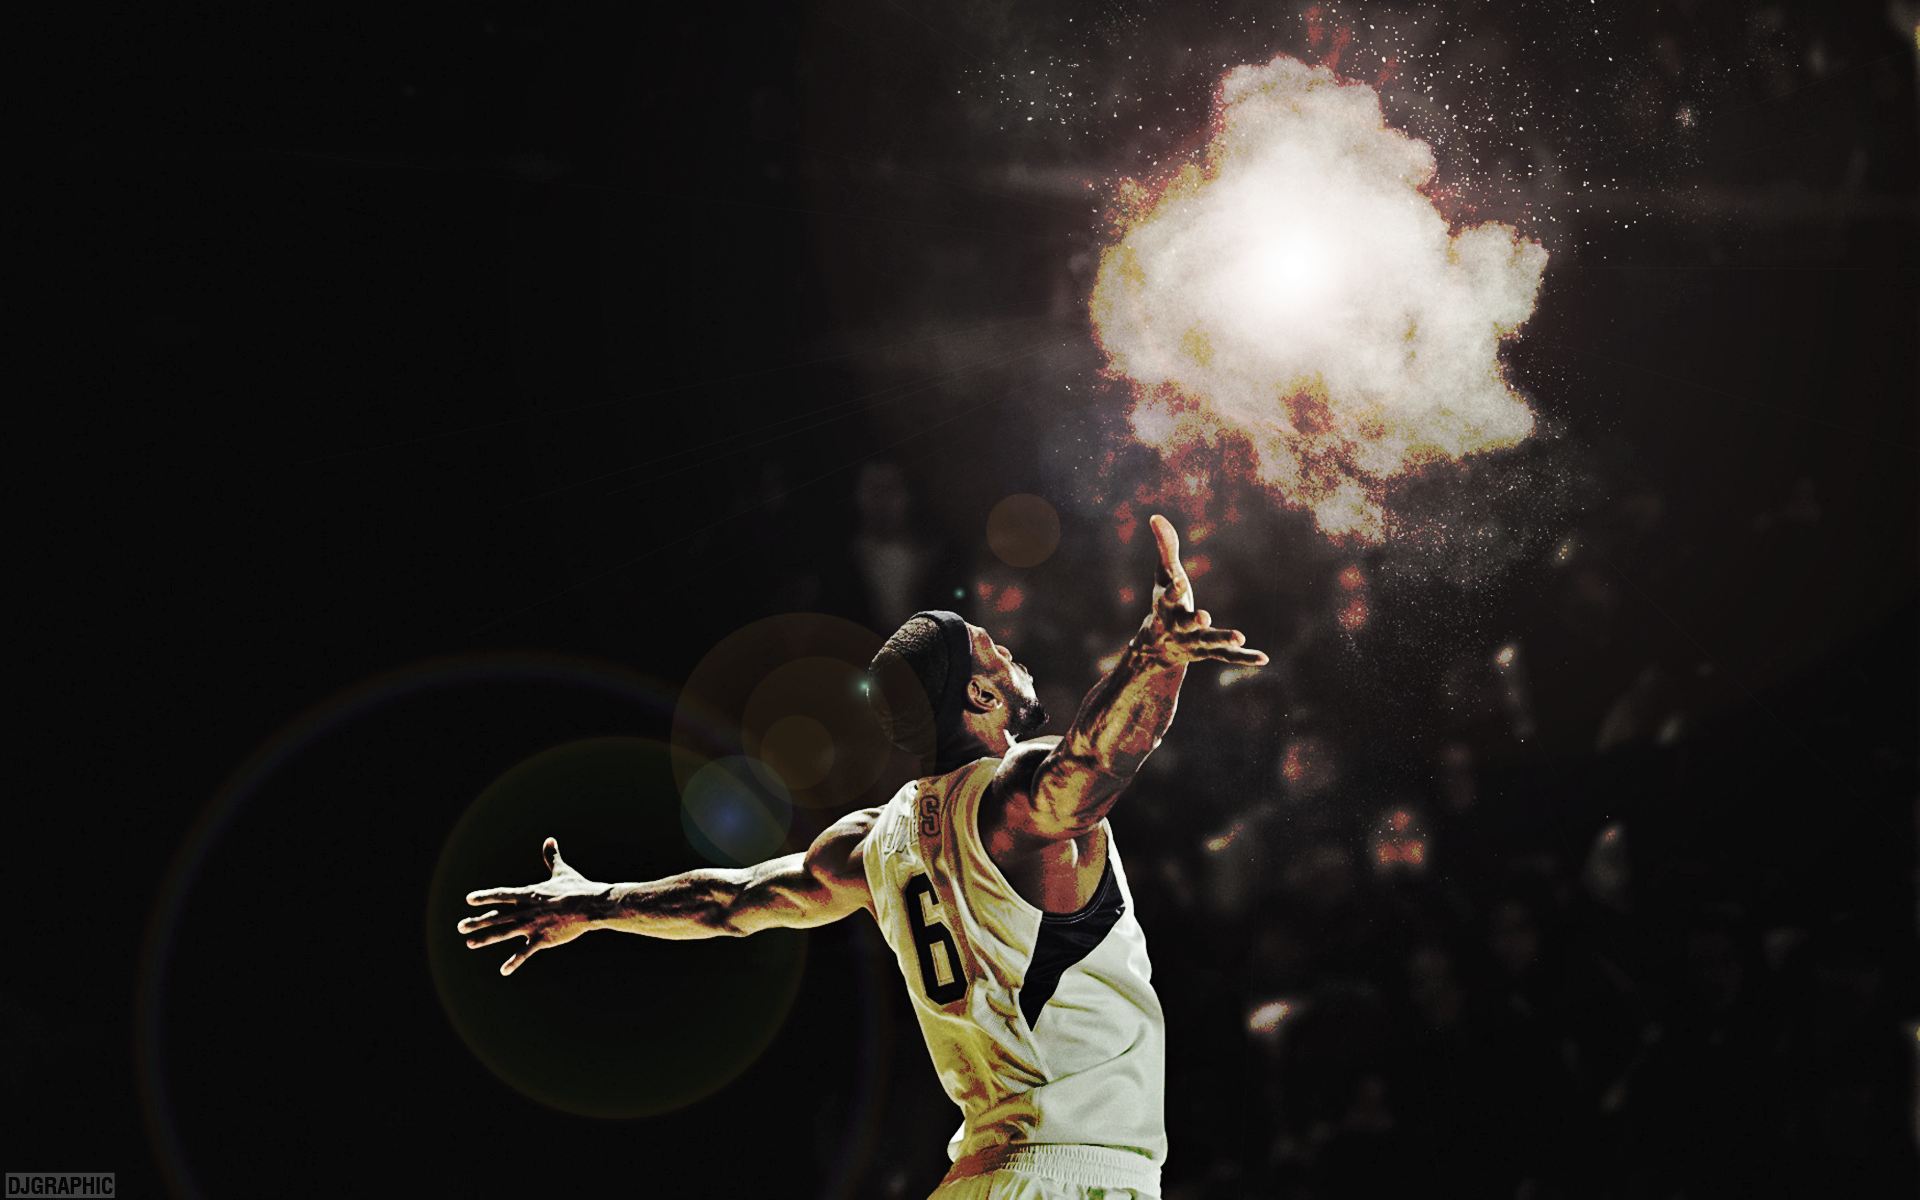 LeBron James by DJgraphic 1920 x 1200 1920x1200